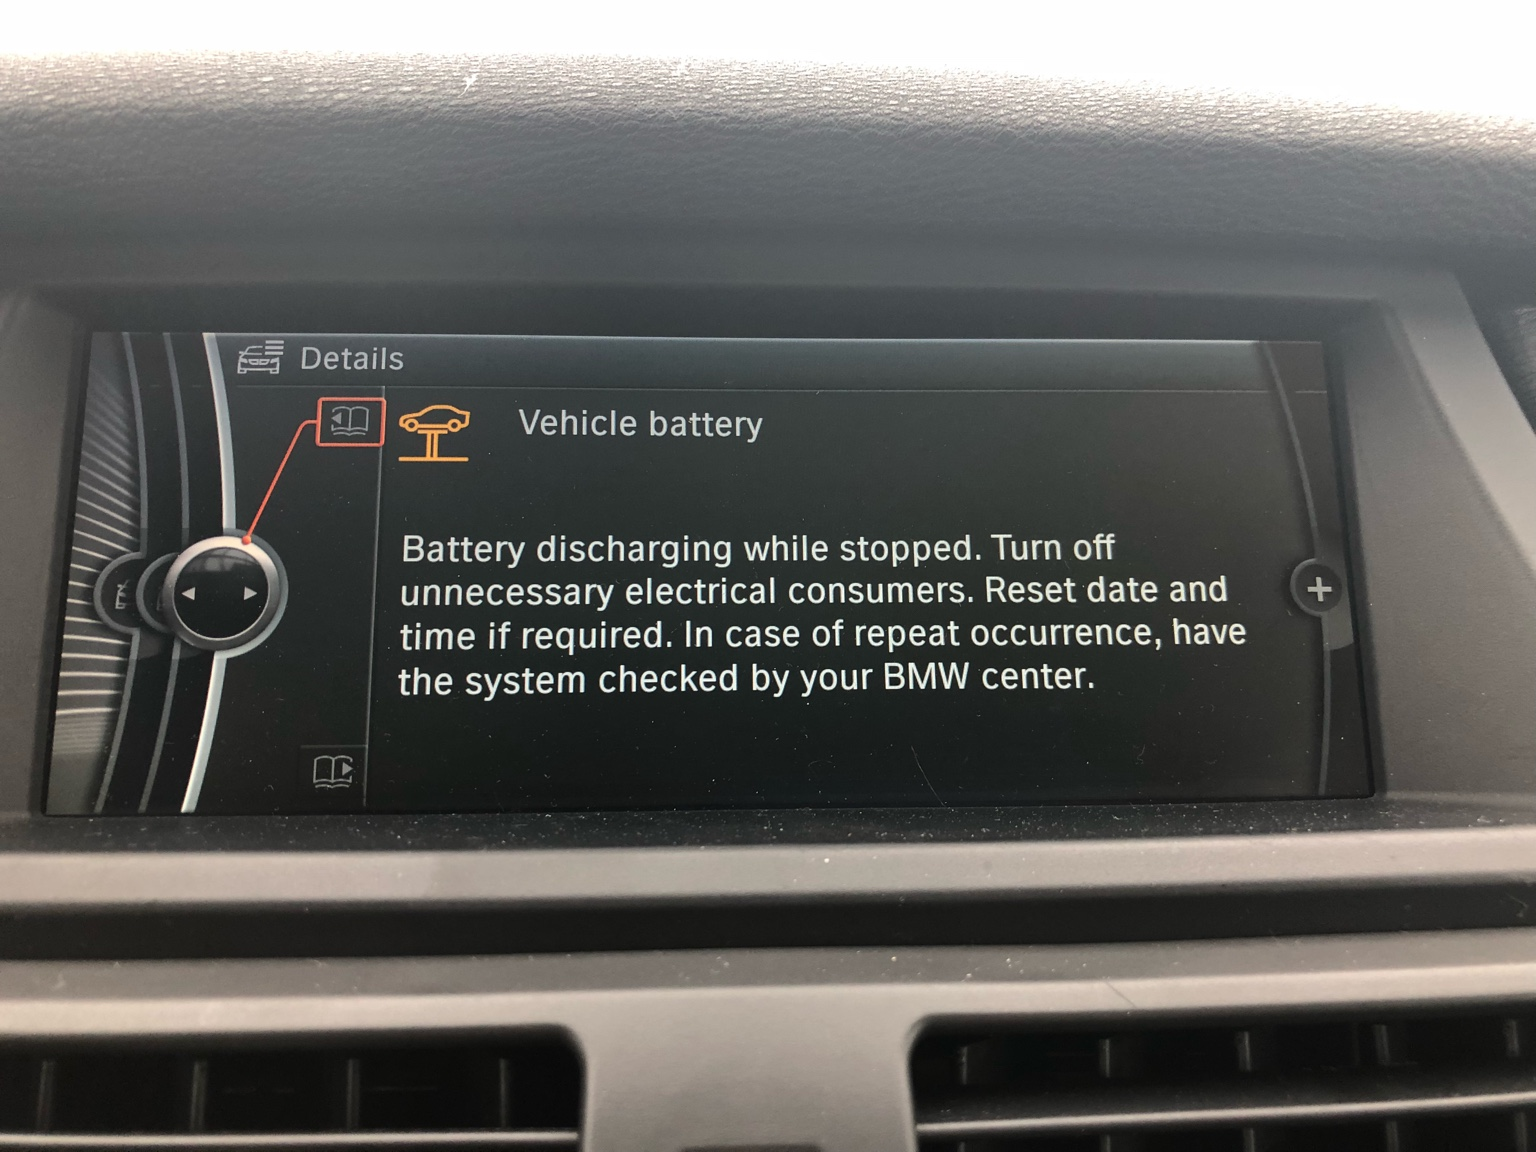 Battery Discharge - Cold Weather or Replace? - Bimmerfest